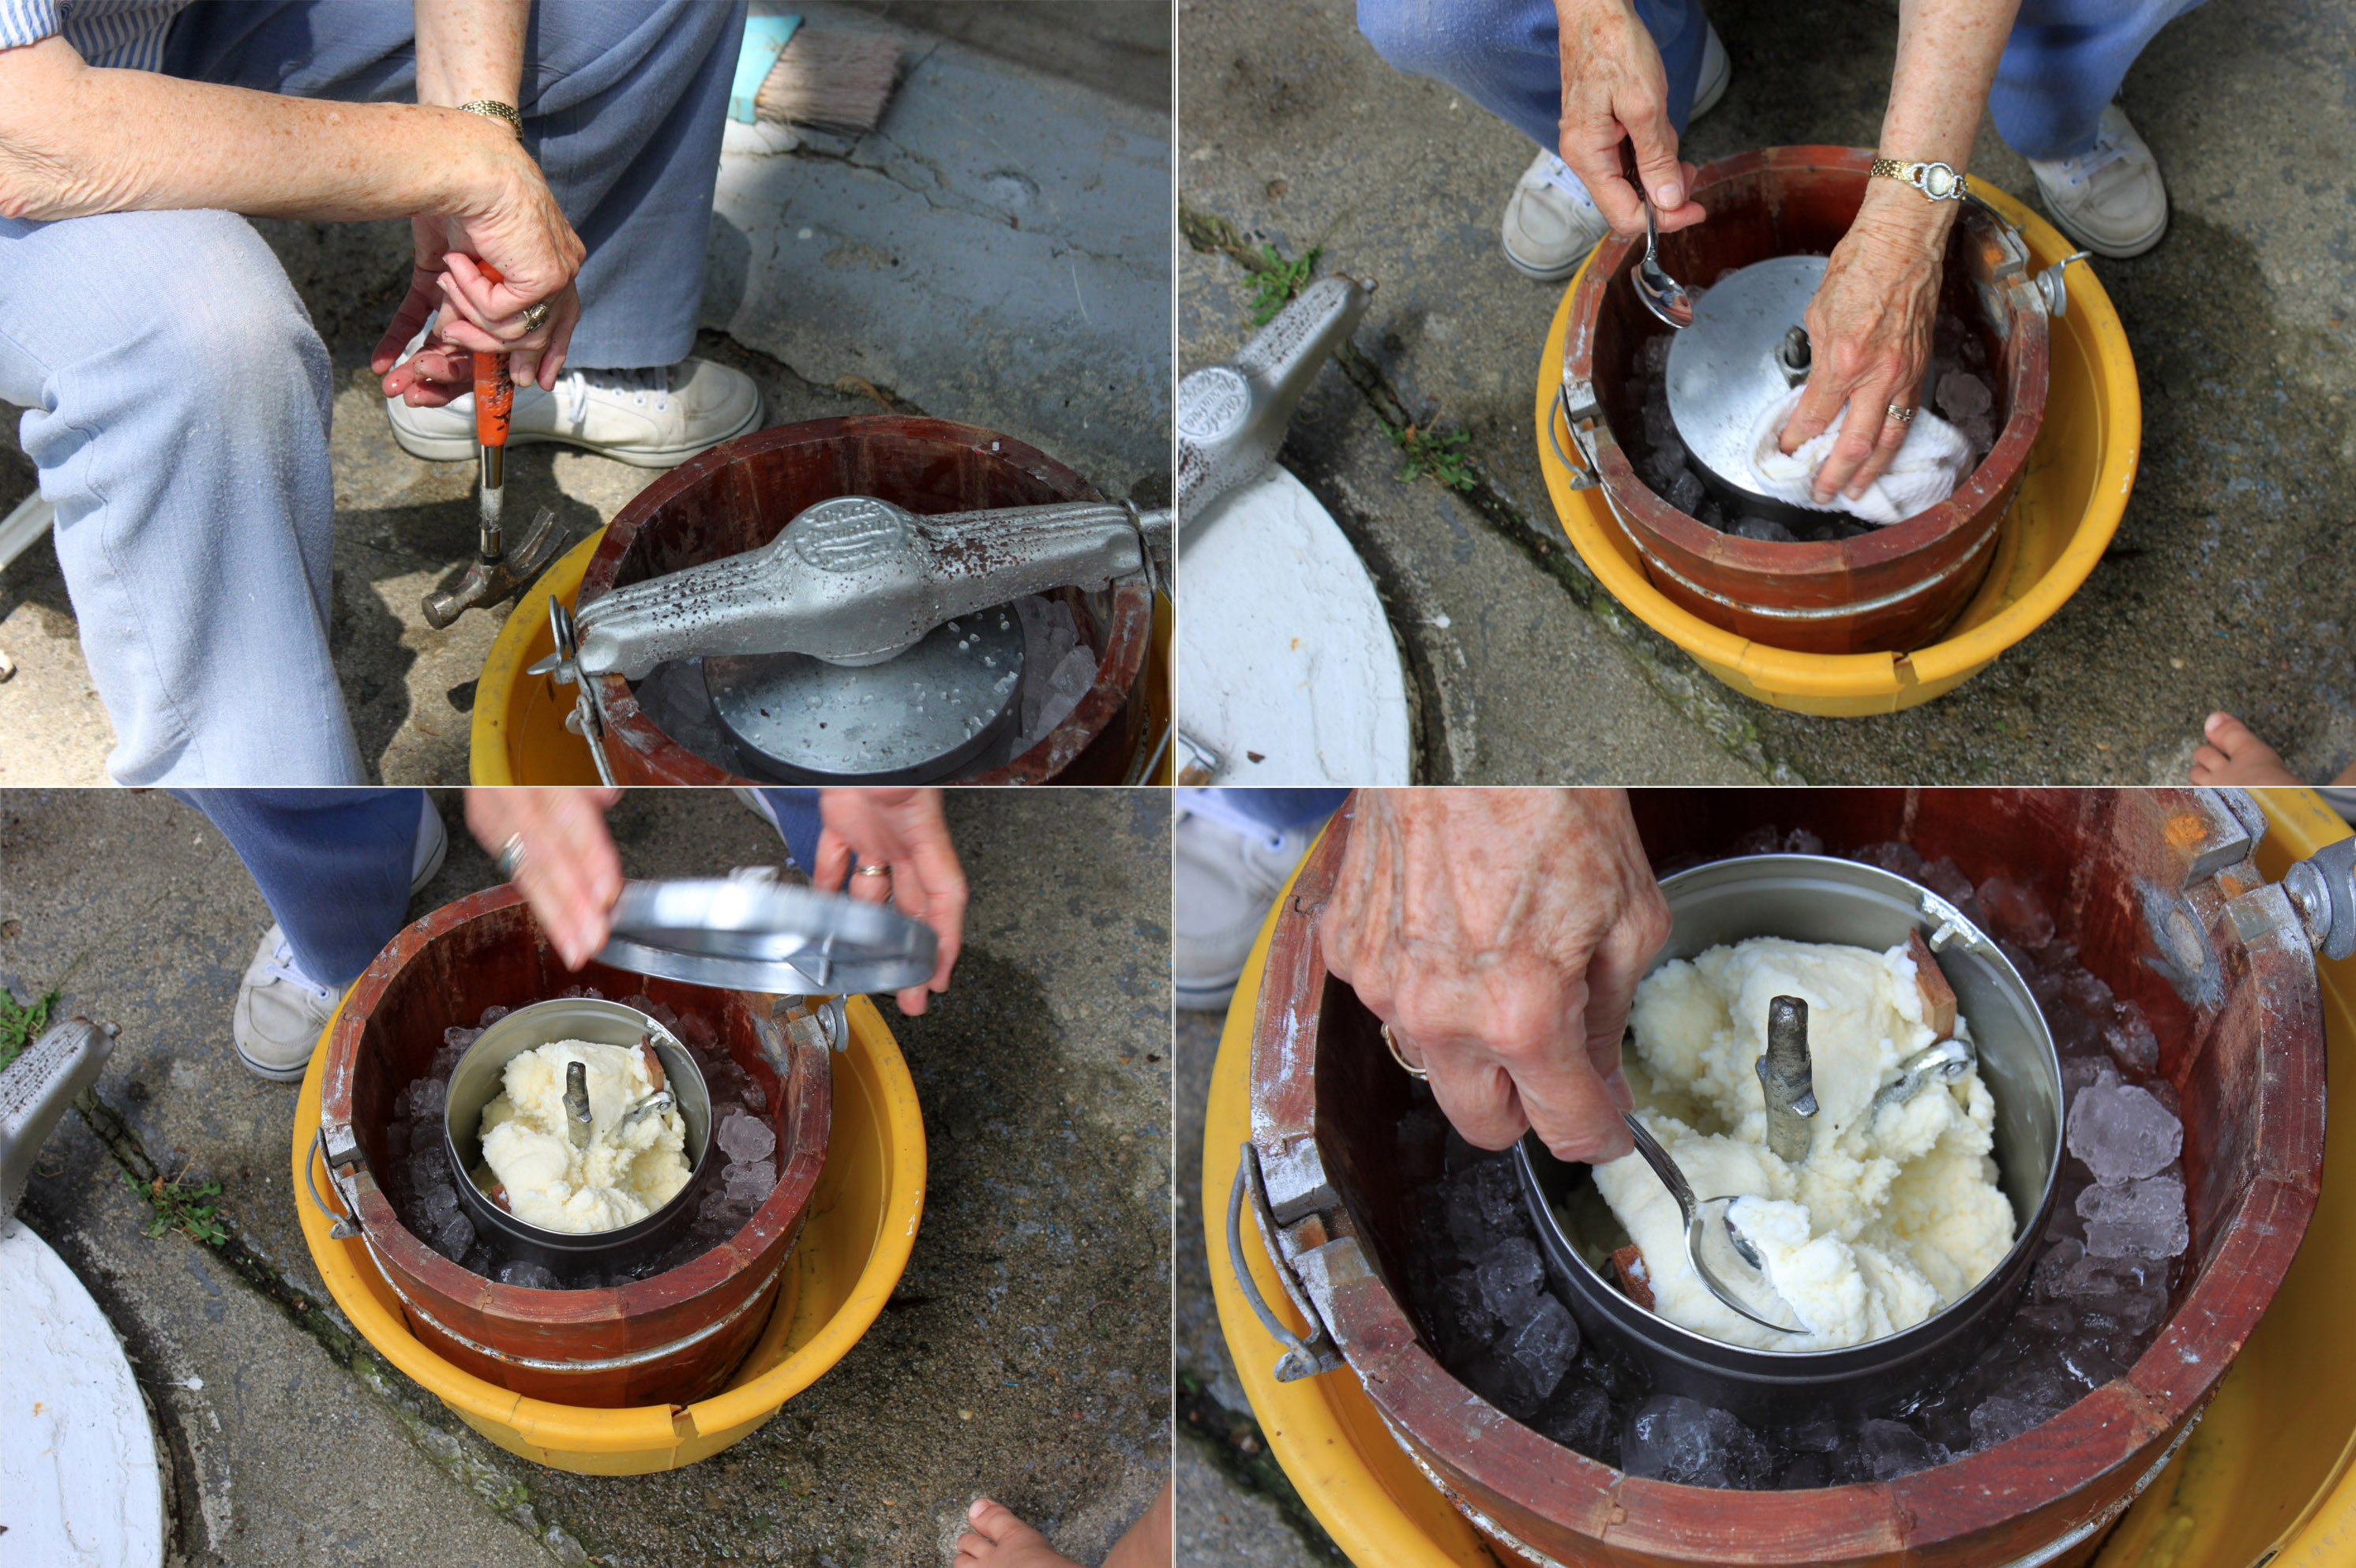 Making ice cream with heavy metal hackaday for Making sorbet by hand